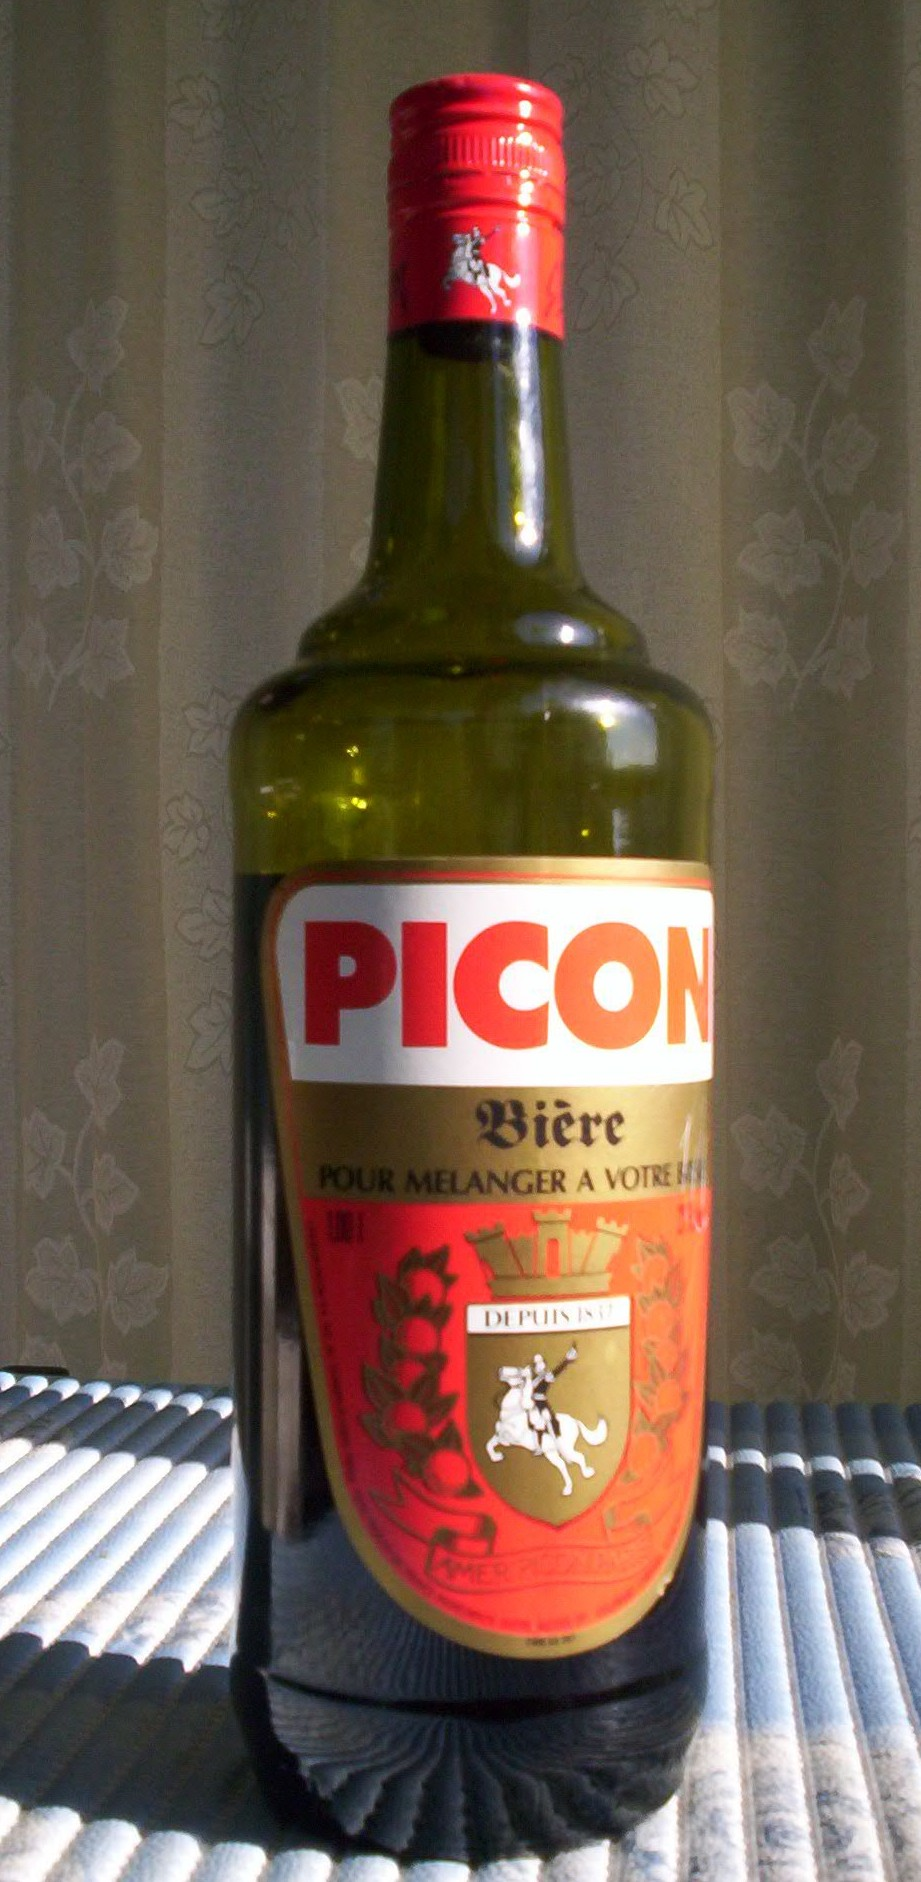 Random Fact: - The French have their own version called Amer Picon.